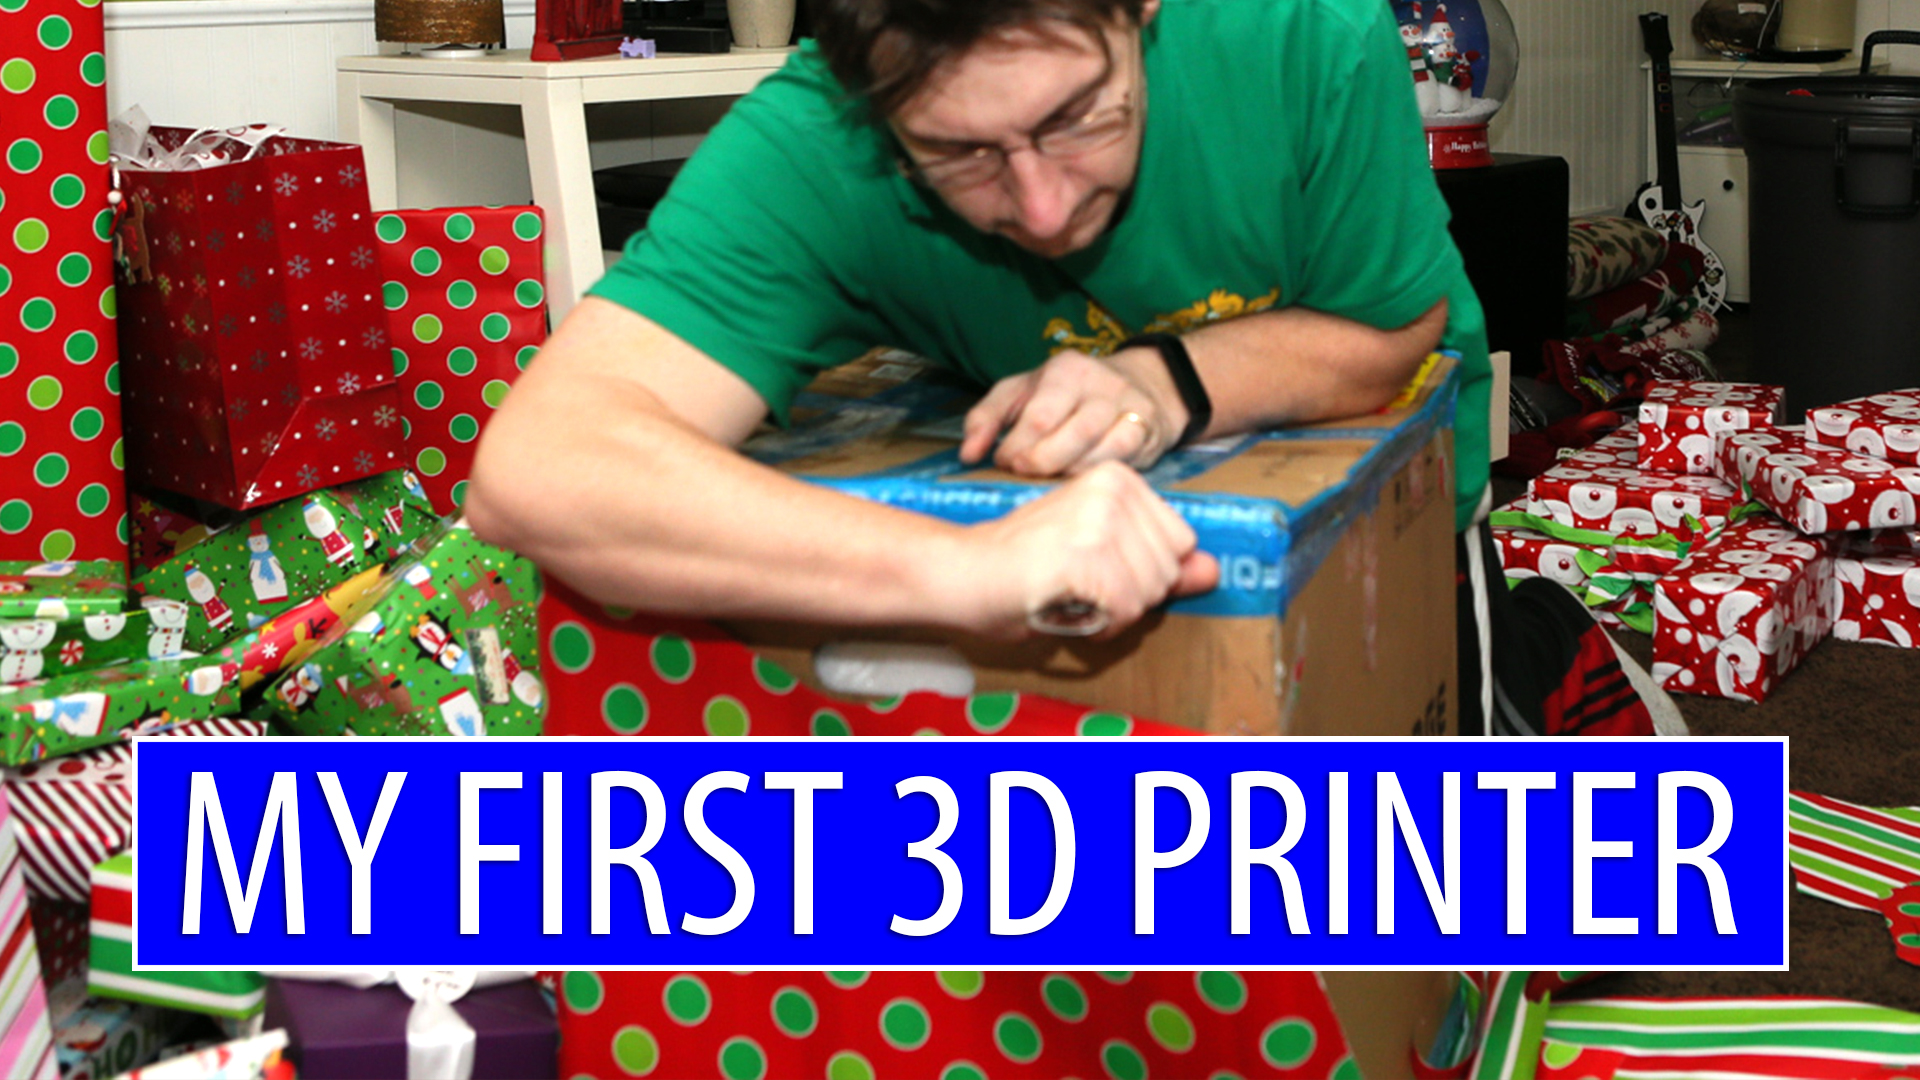 Did You Get a 3D Printer for Christmas? I Got a 3D Printer for Christmas 3 Years Ago!